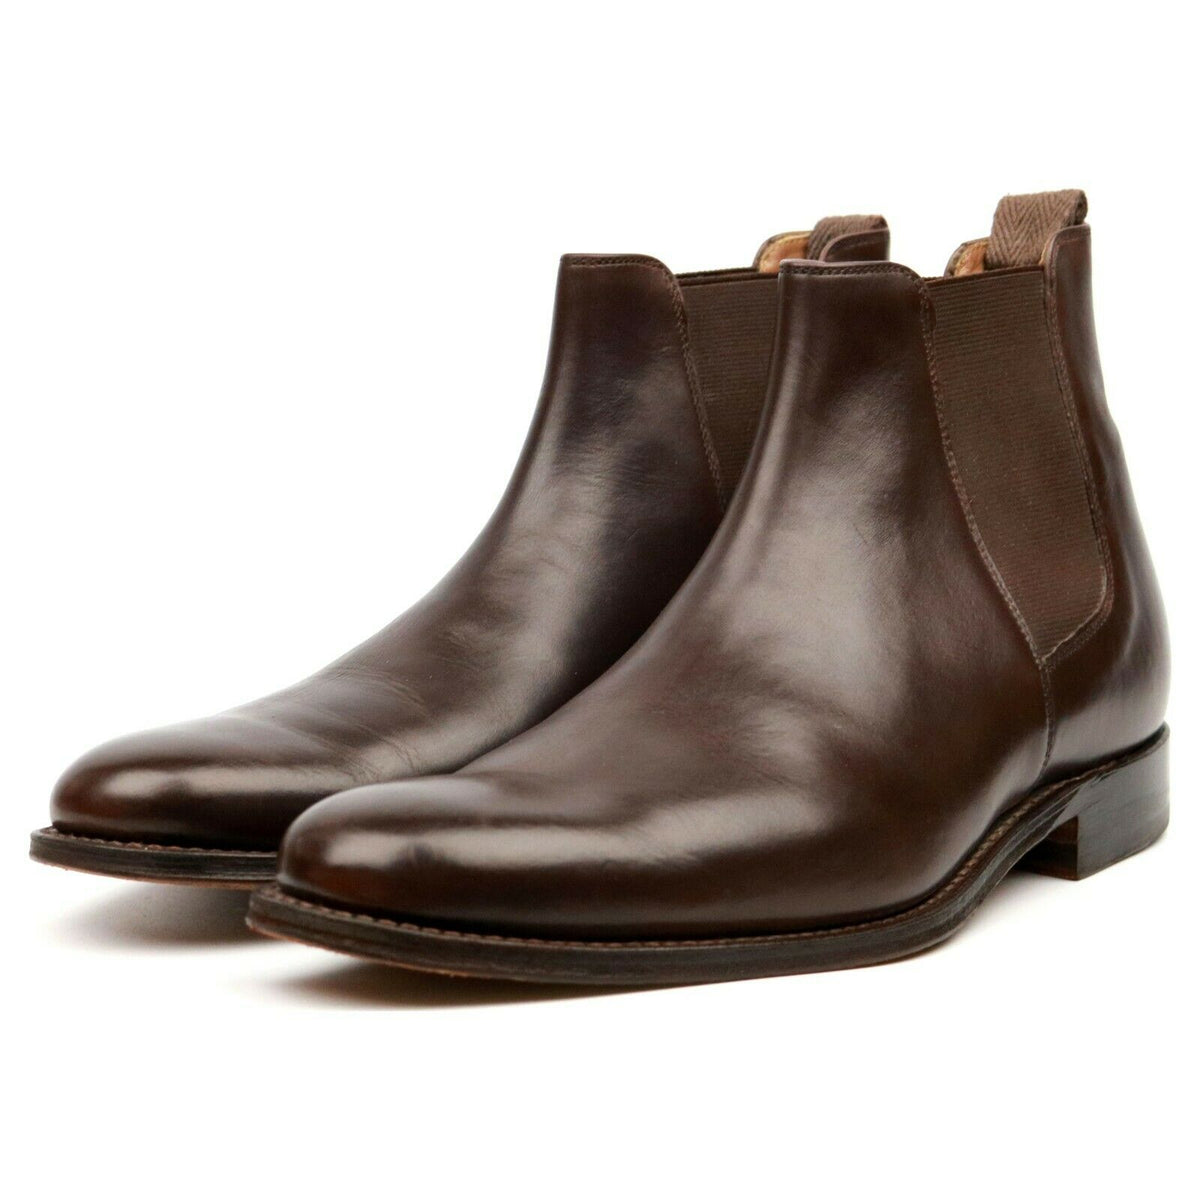 Grenson 'Declan' Brown Leather Chelsea Boots UK 7 F